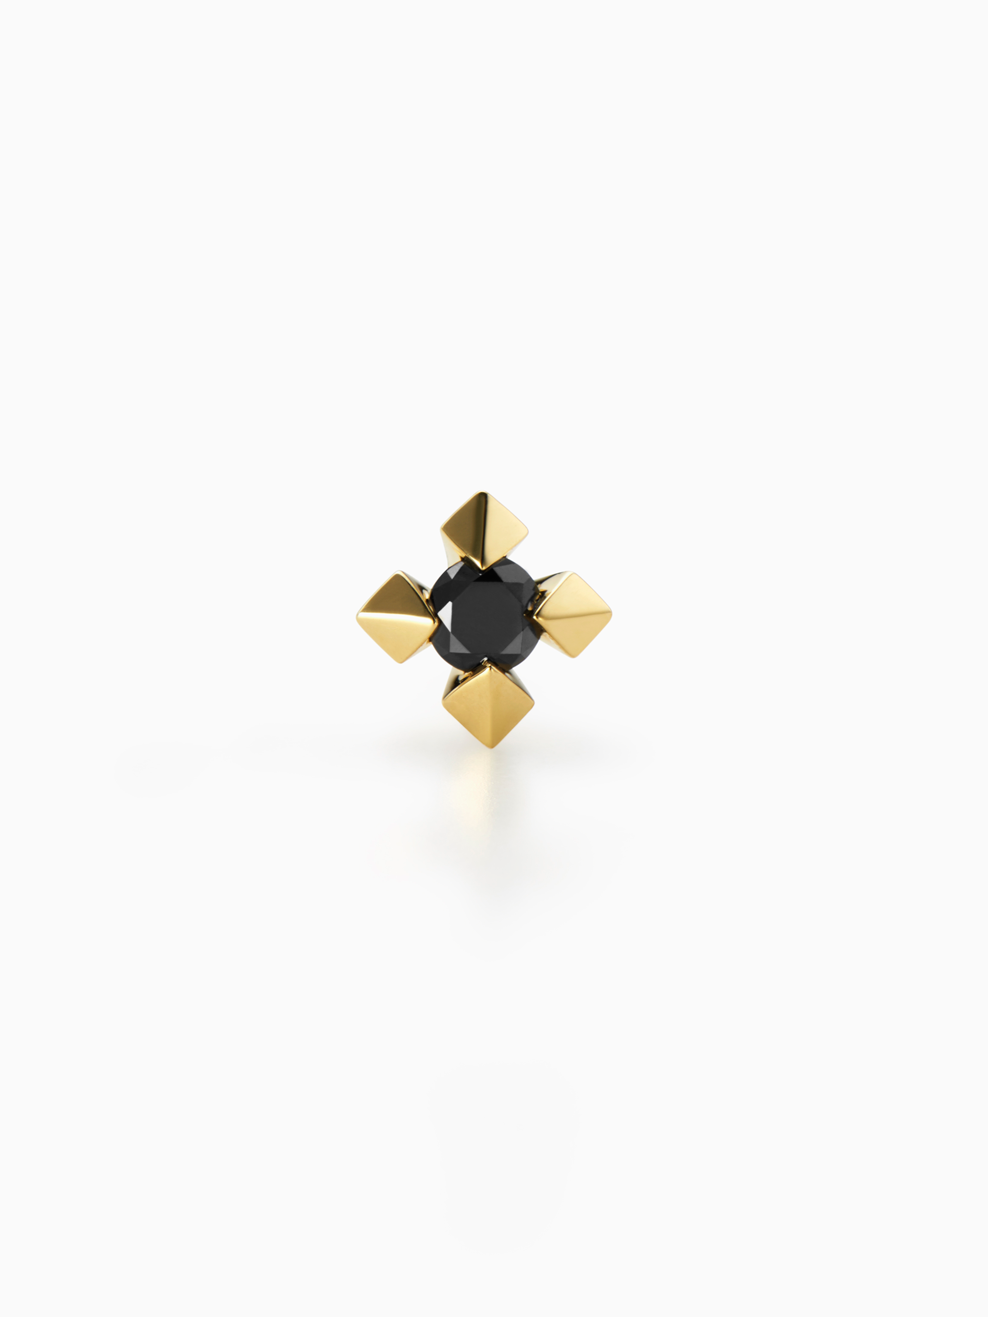 Adamas 01 / Earring / Diamond / Gold